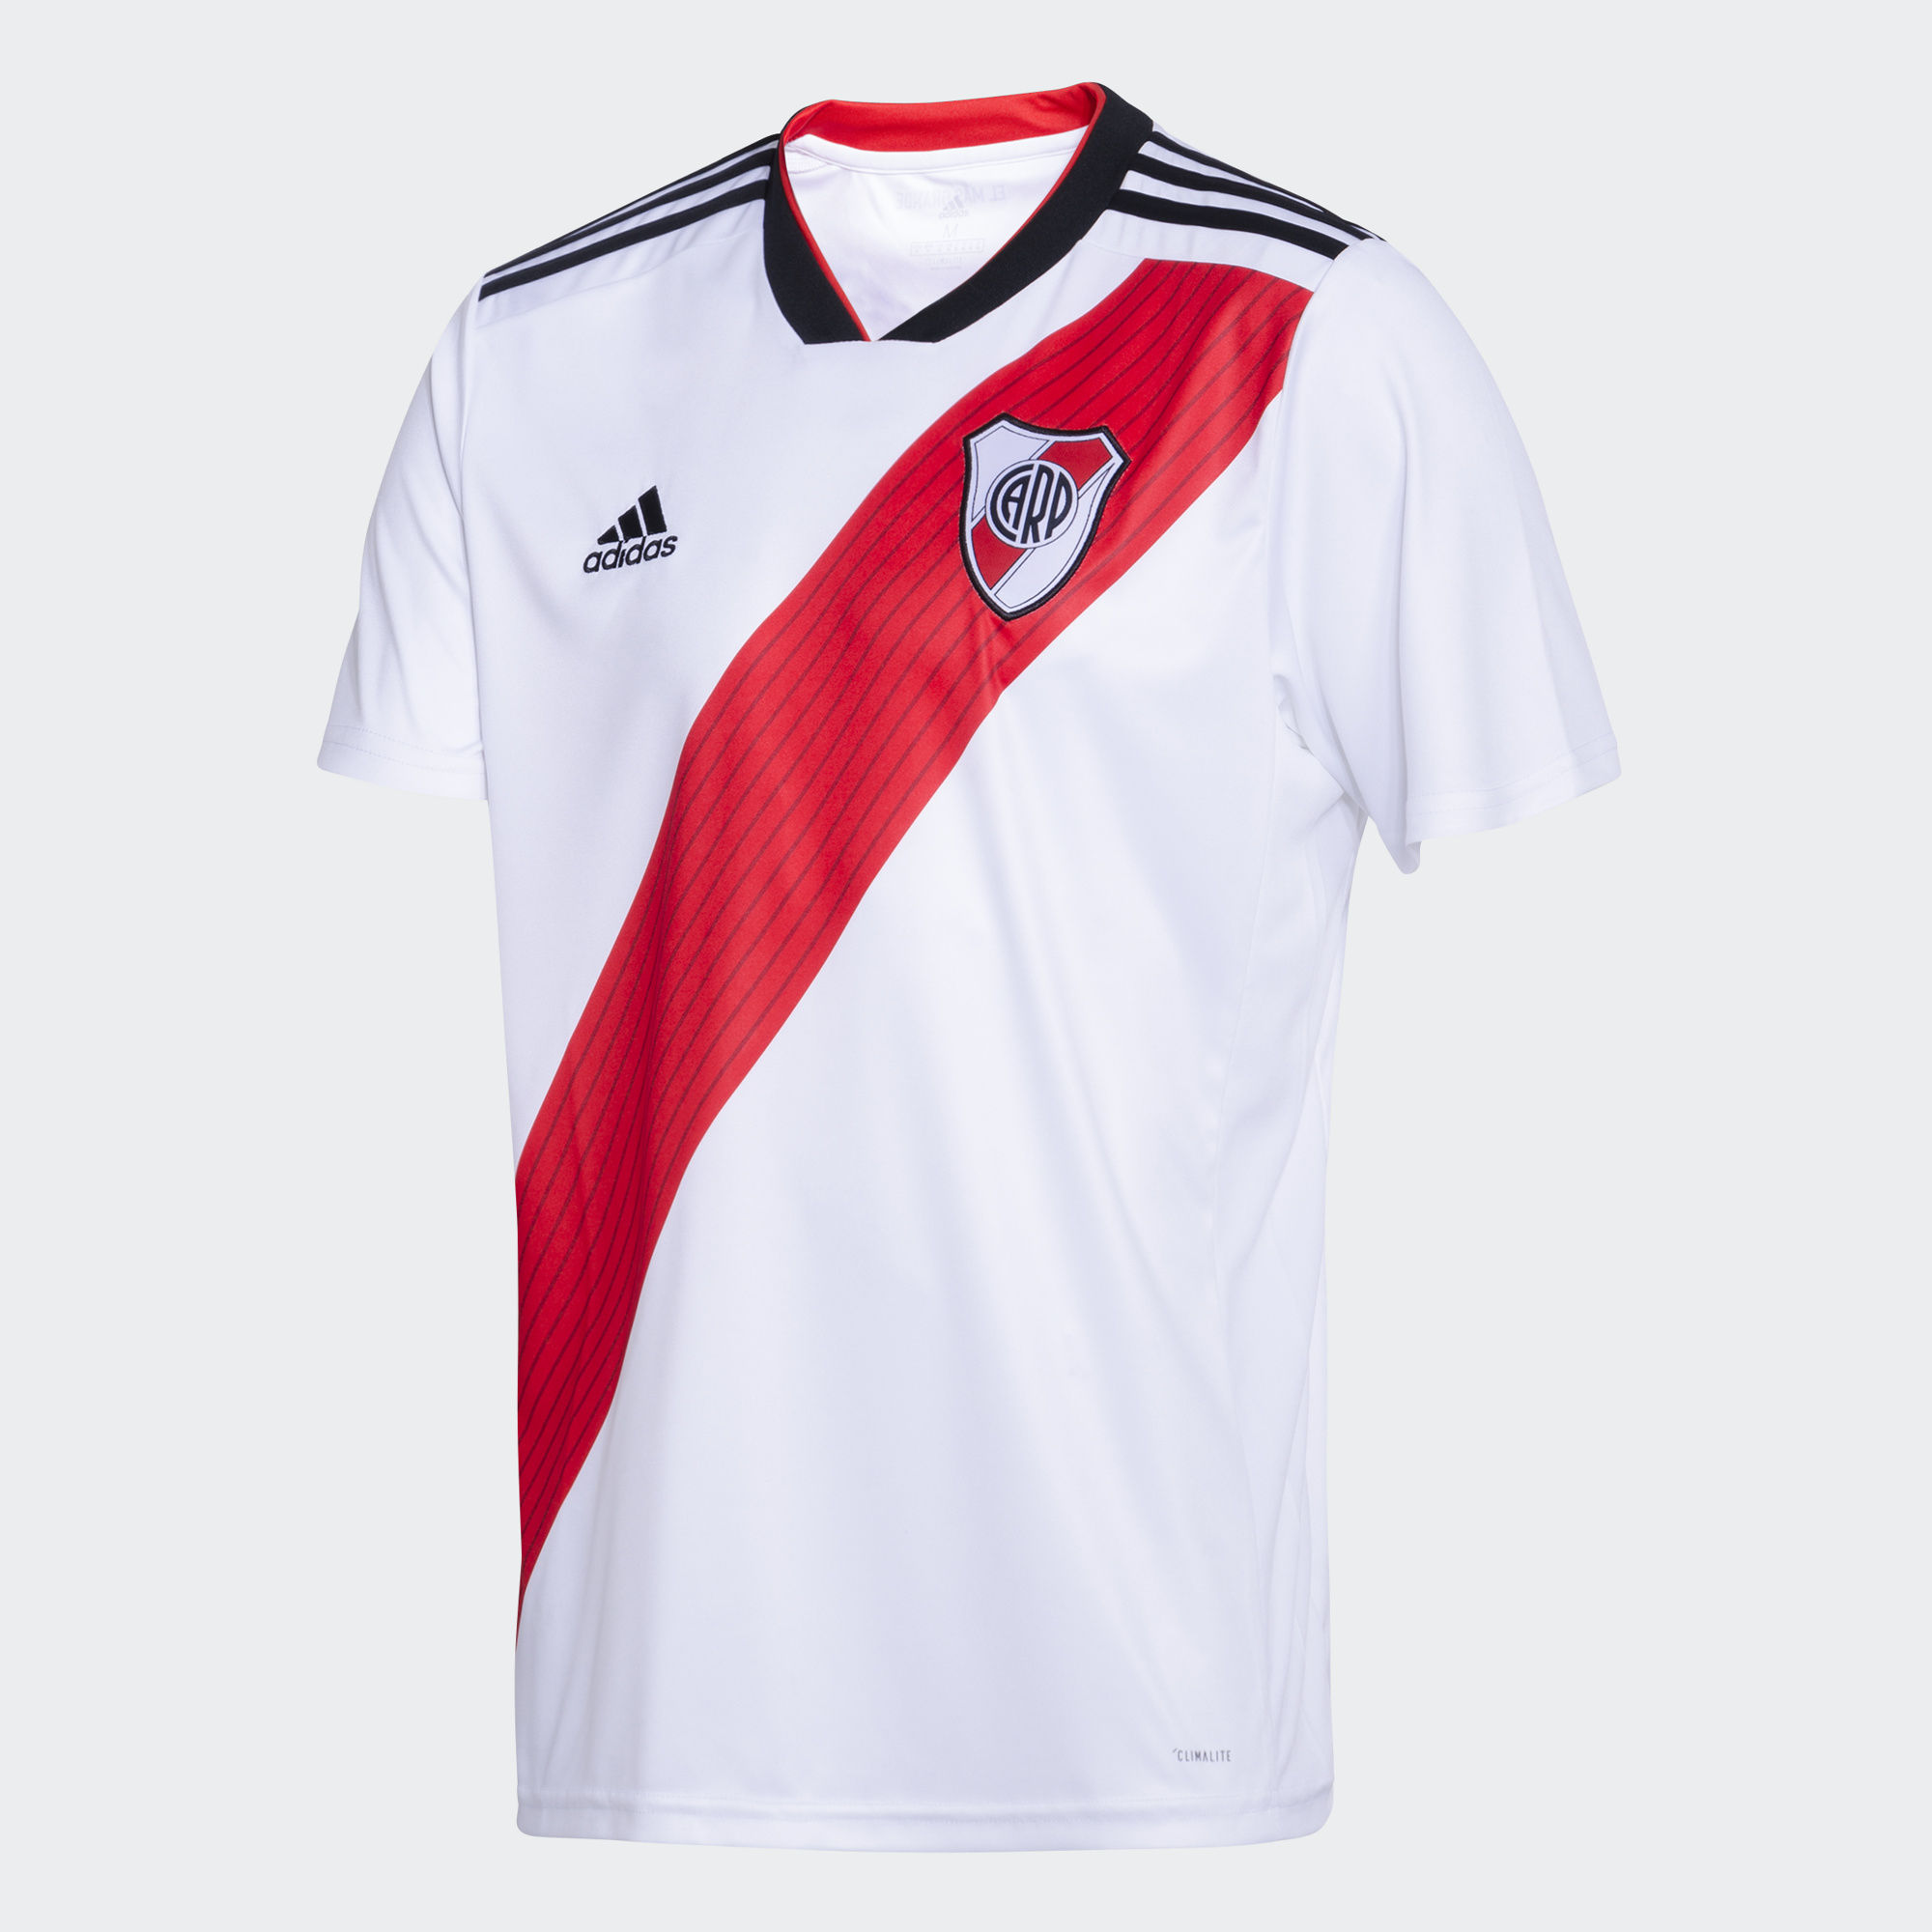 12e386e6b42 ... River Plate 2018-19 Adidas Away Kit · Click to enlarge image  river_plate_18_19_adidas_home_kit_a.jpg ...